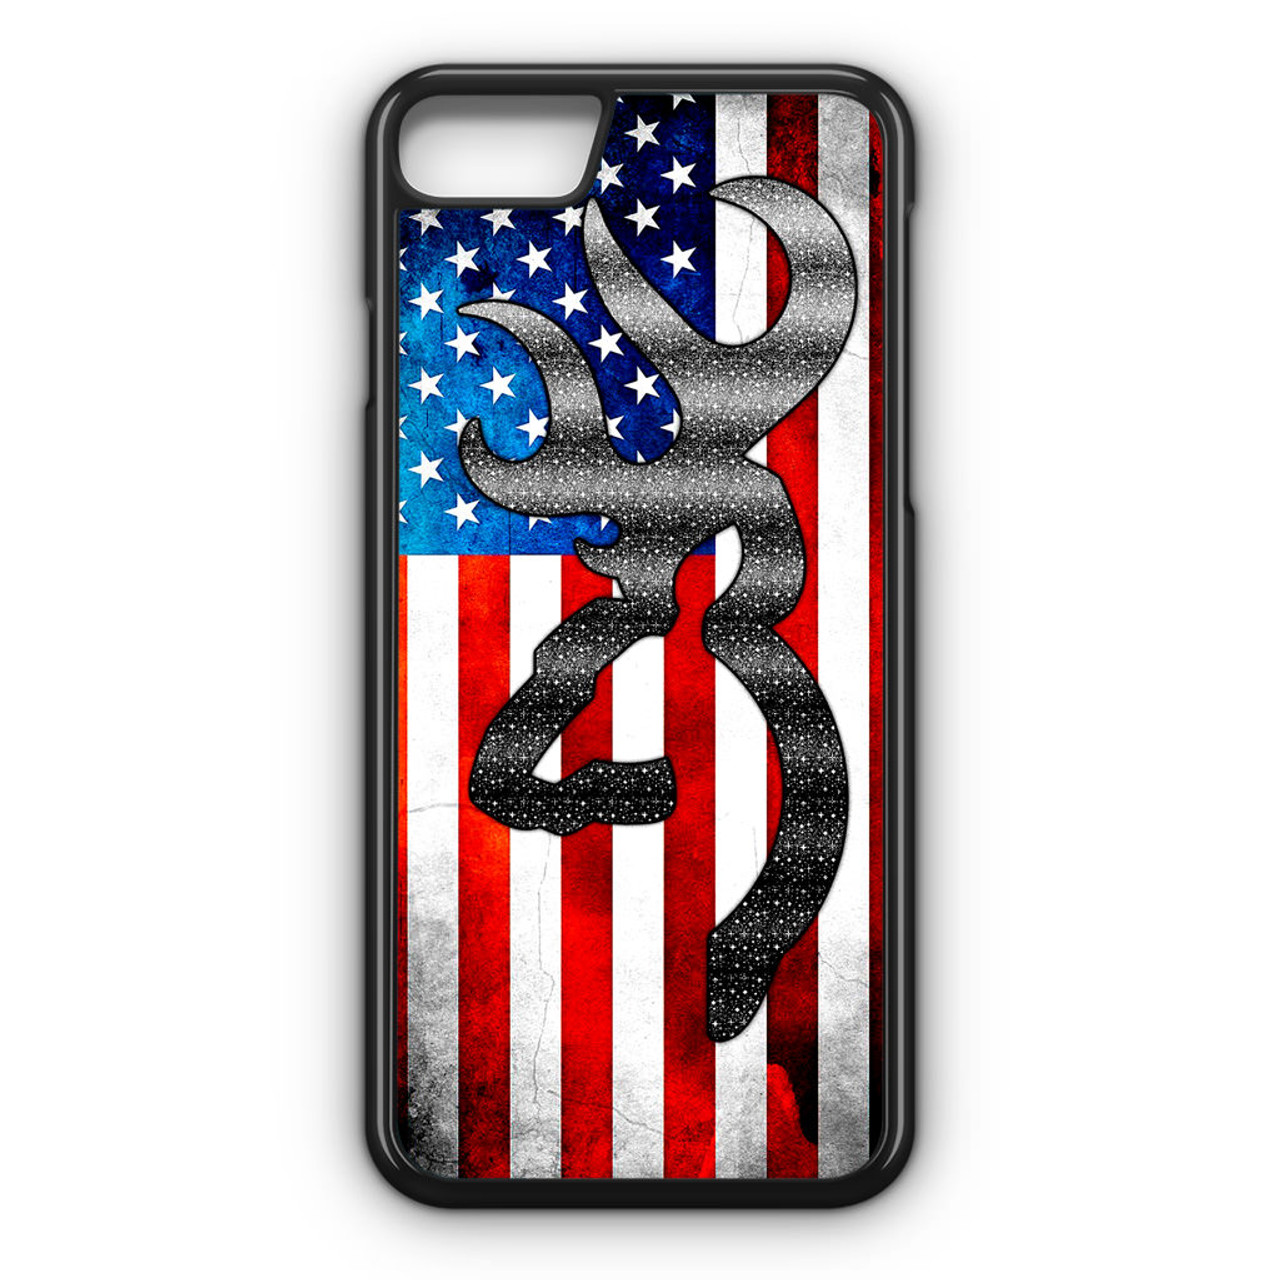 anchor iphone 7 case